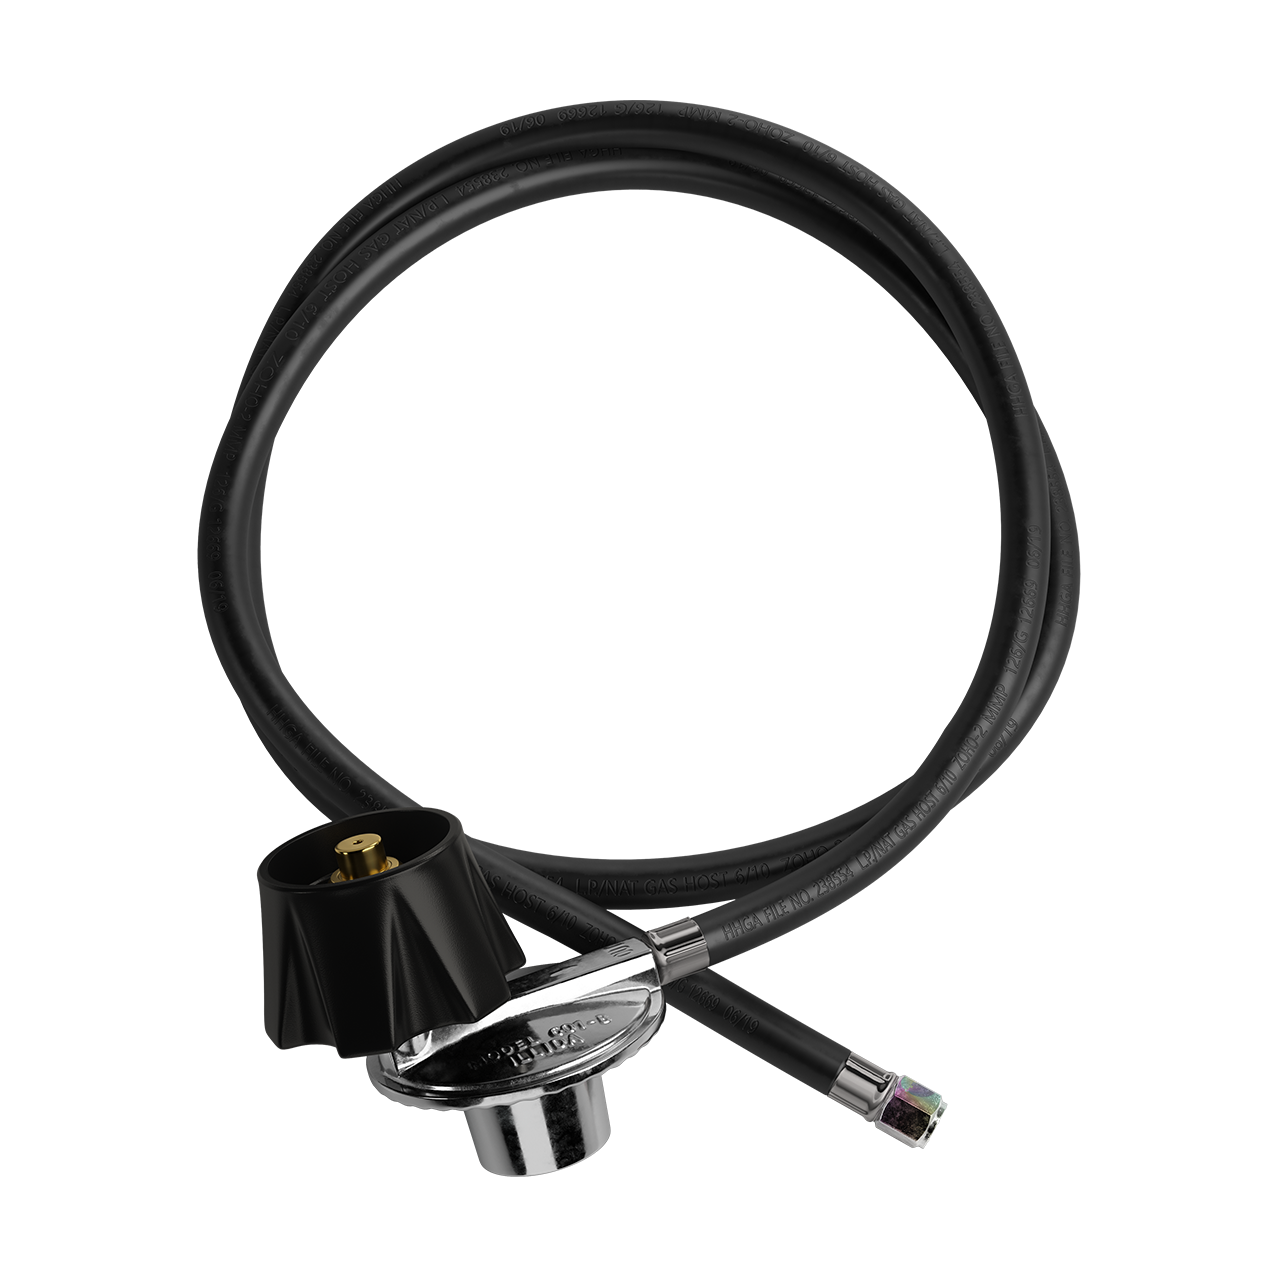 Blazing Bull Regulator & Gas Hose - Top View